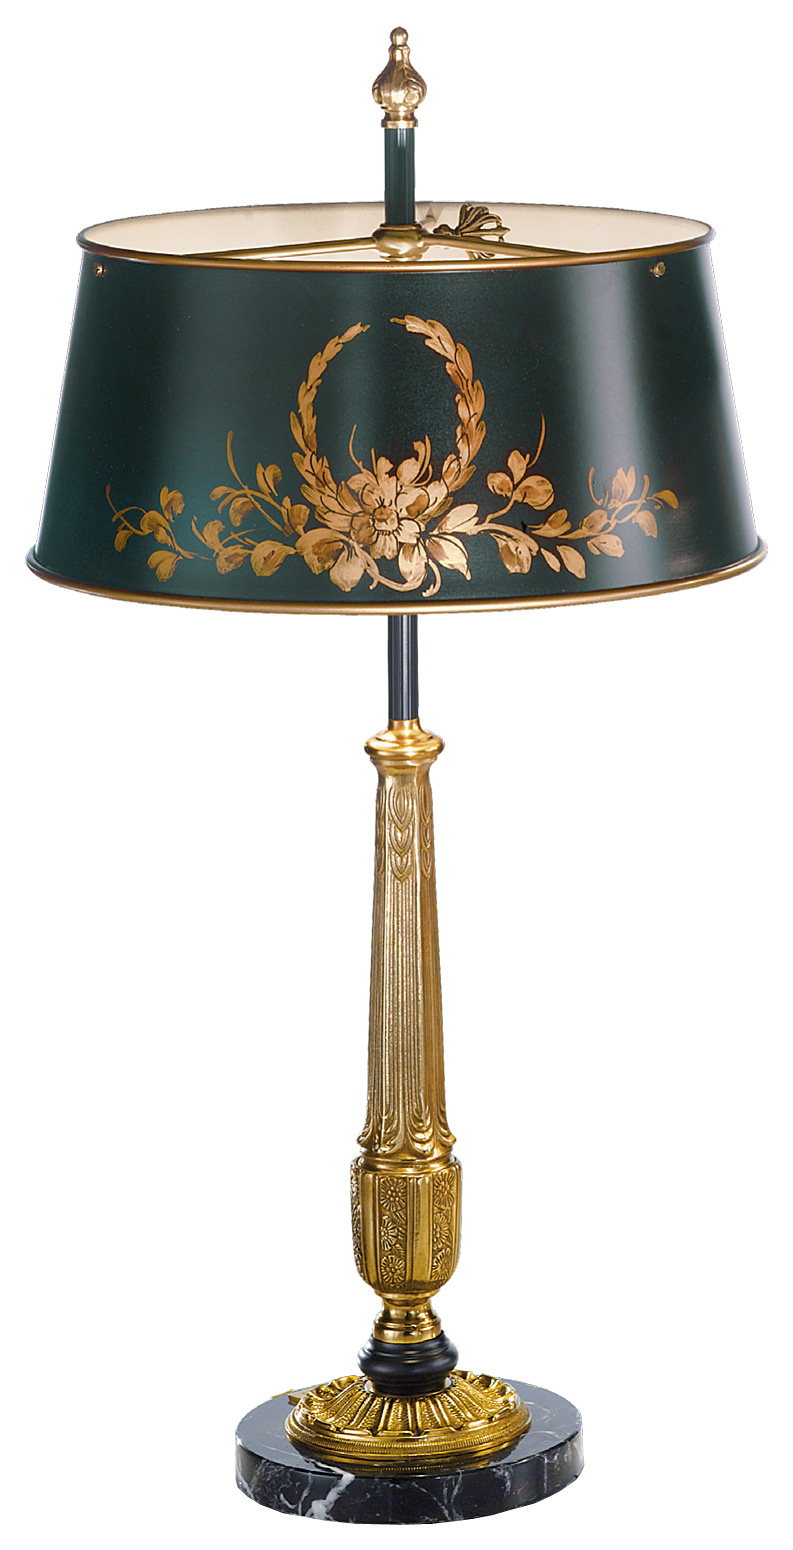 Antique table lamps 25 keys to extreme beauty to your home antique table lamps 25 keys to extreme beauty to your home geotapseo Image collections